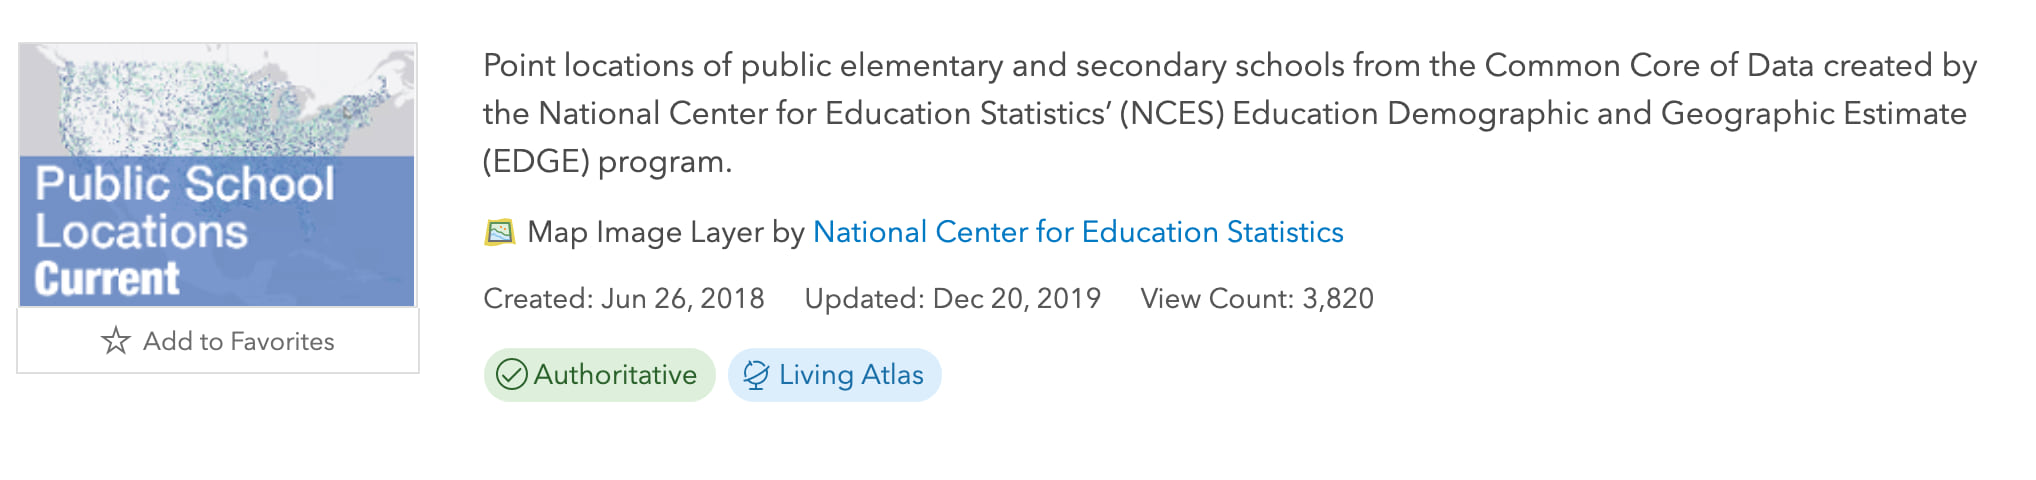 Item card in ArcGIS Online for Map Image Layer by National Center for Education Statistics - point locations of public elementary and secondary schools